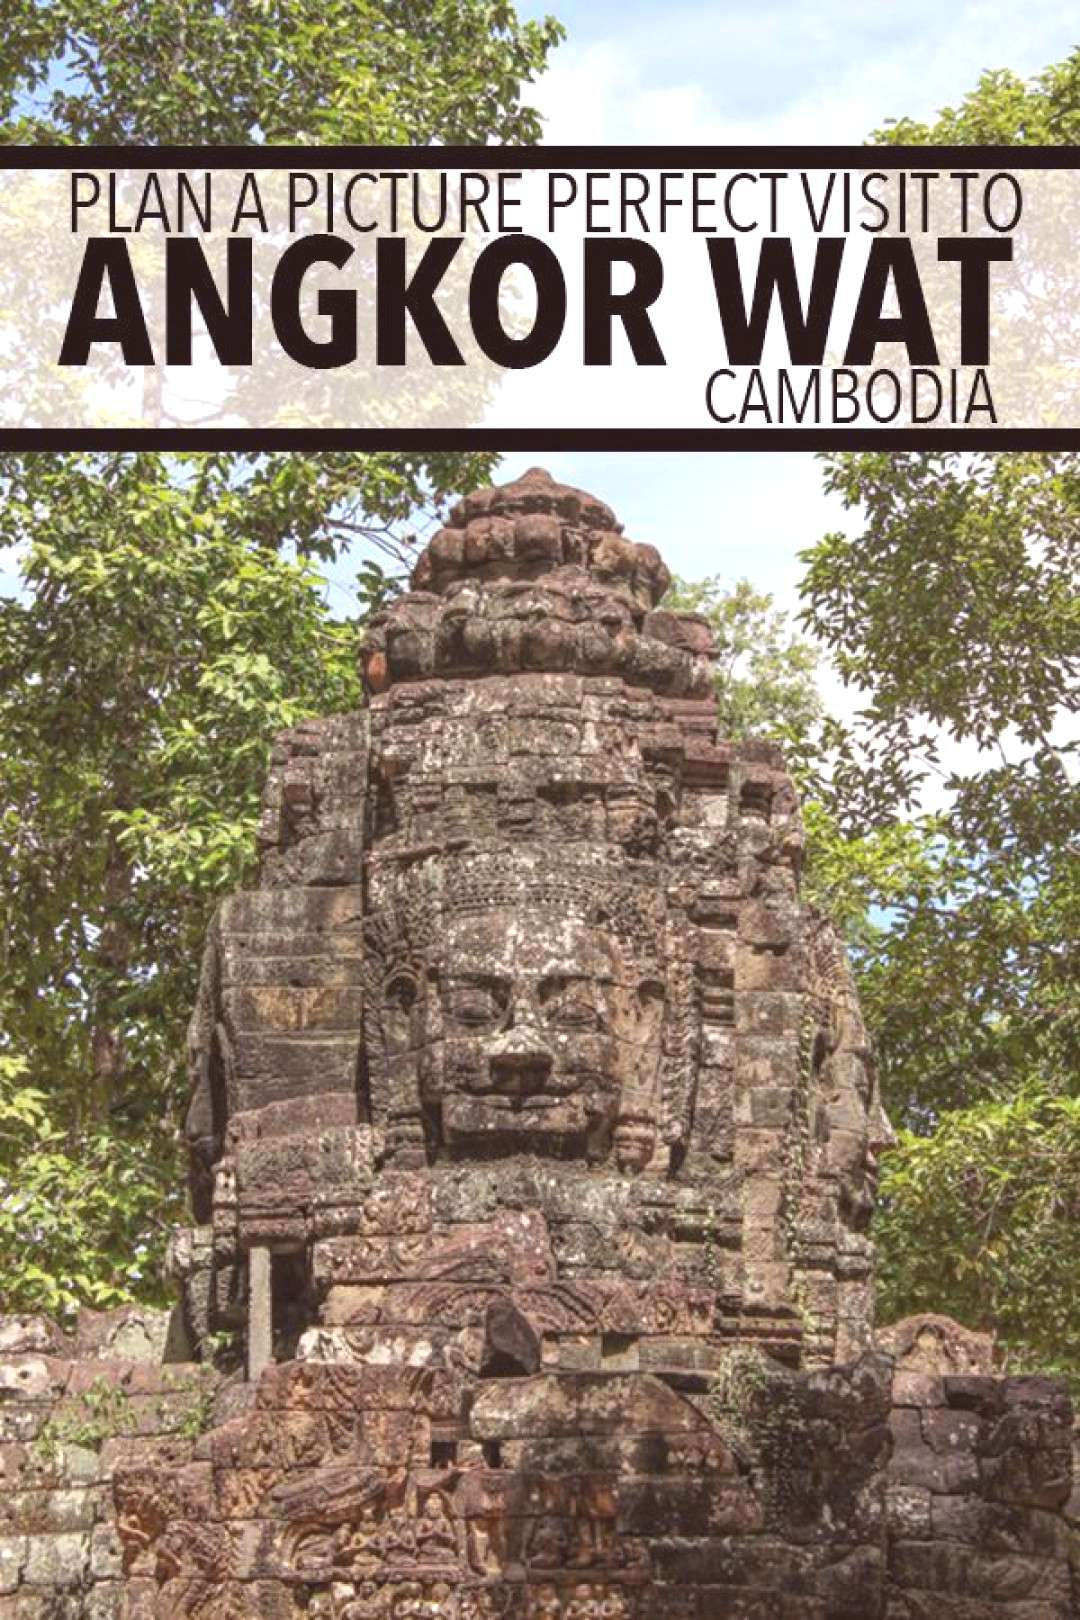 Plan A Picture Perfect Visit To Angkor Wat, Cambodia Plan A Picture Perfect Visit To Angkor Wat, Ca